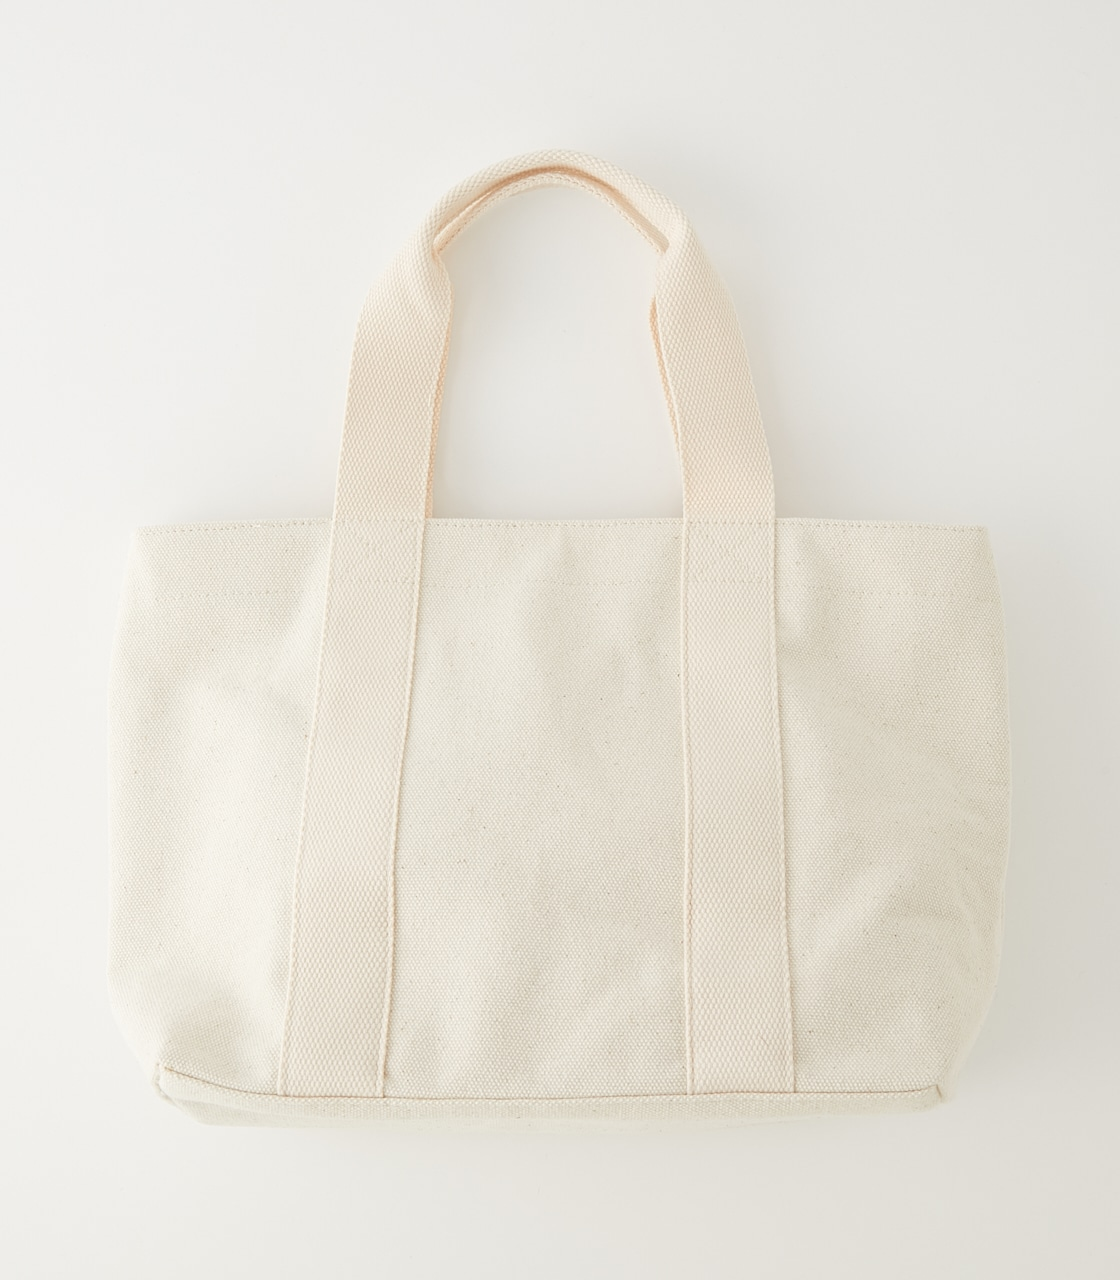 CANVAS MINI TOTE BAG/キャンバスミニトートバッグ 詳細画像 O/WHT 3